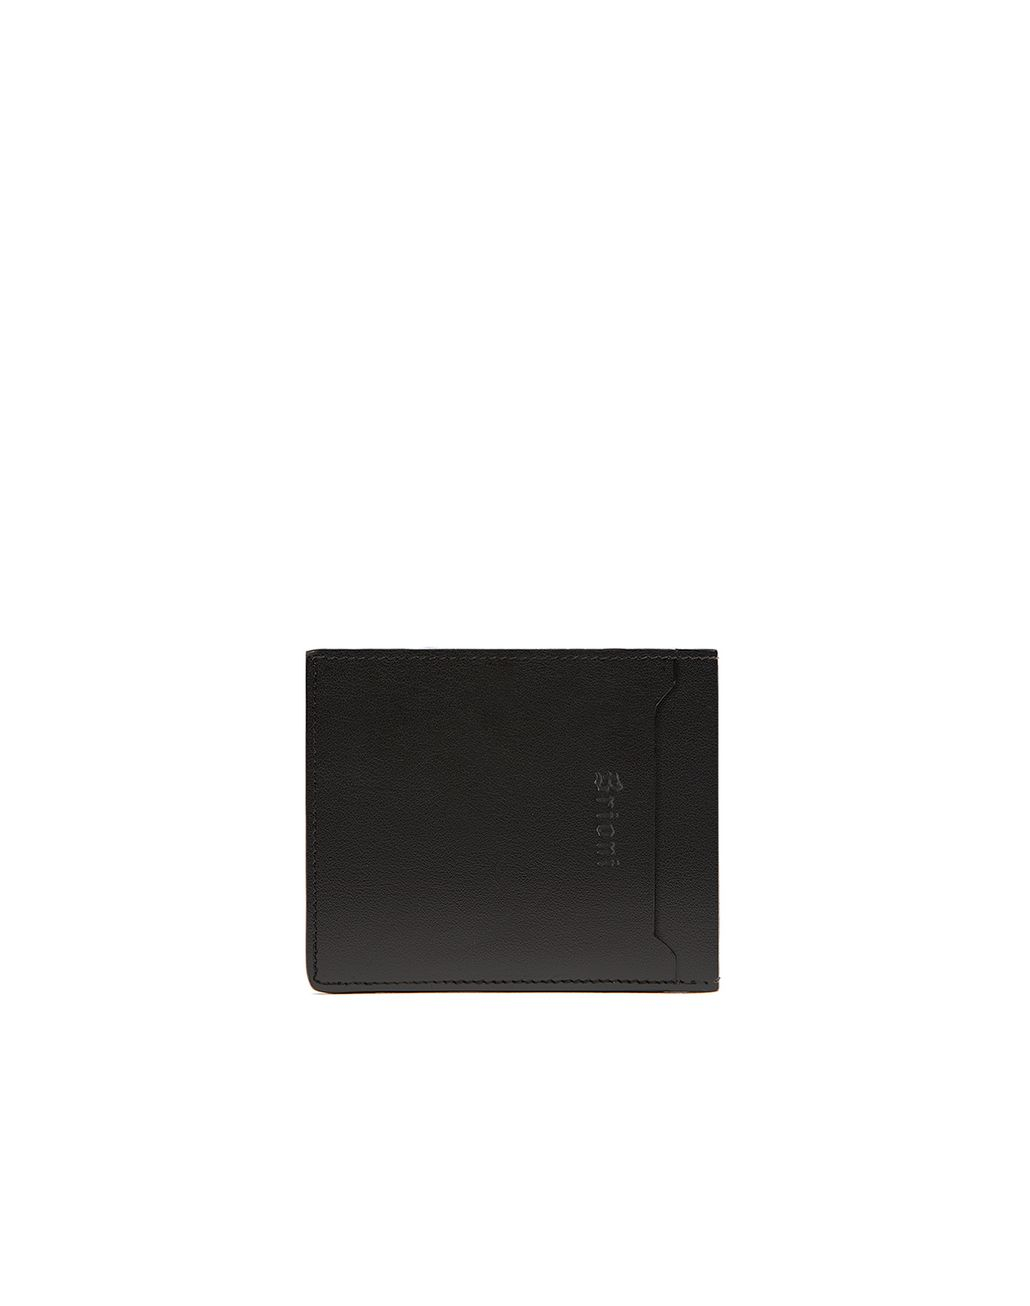 BRIONI Black Slim Wallet Leather Goods U d